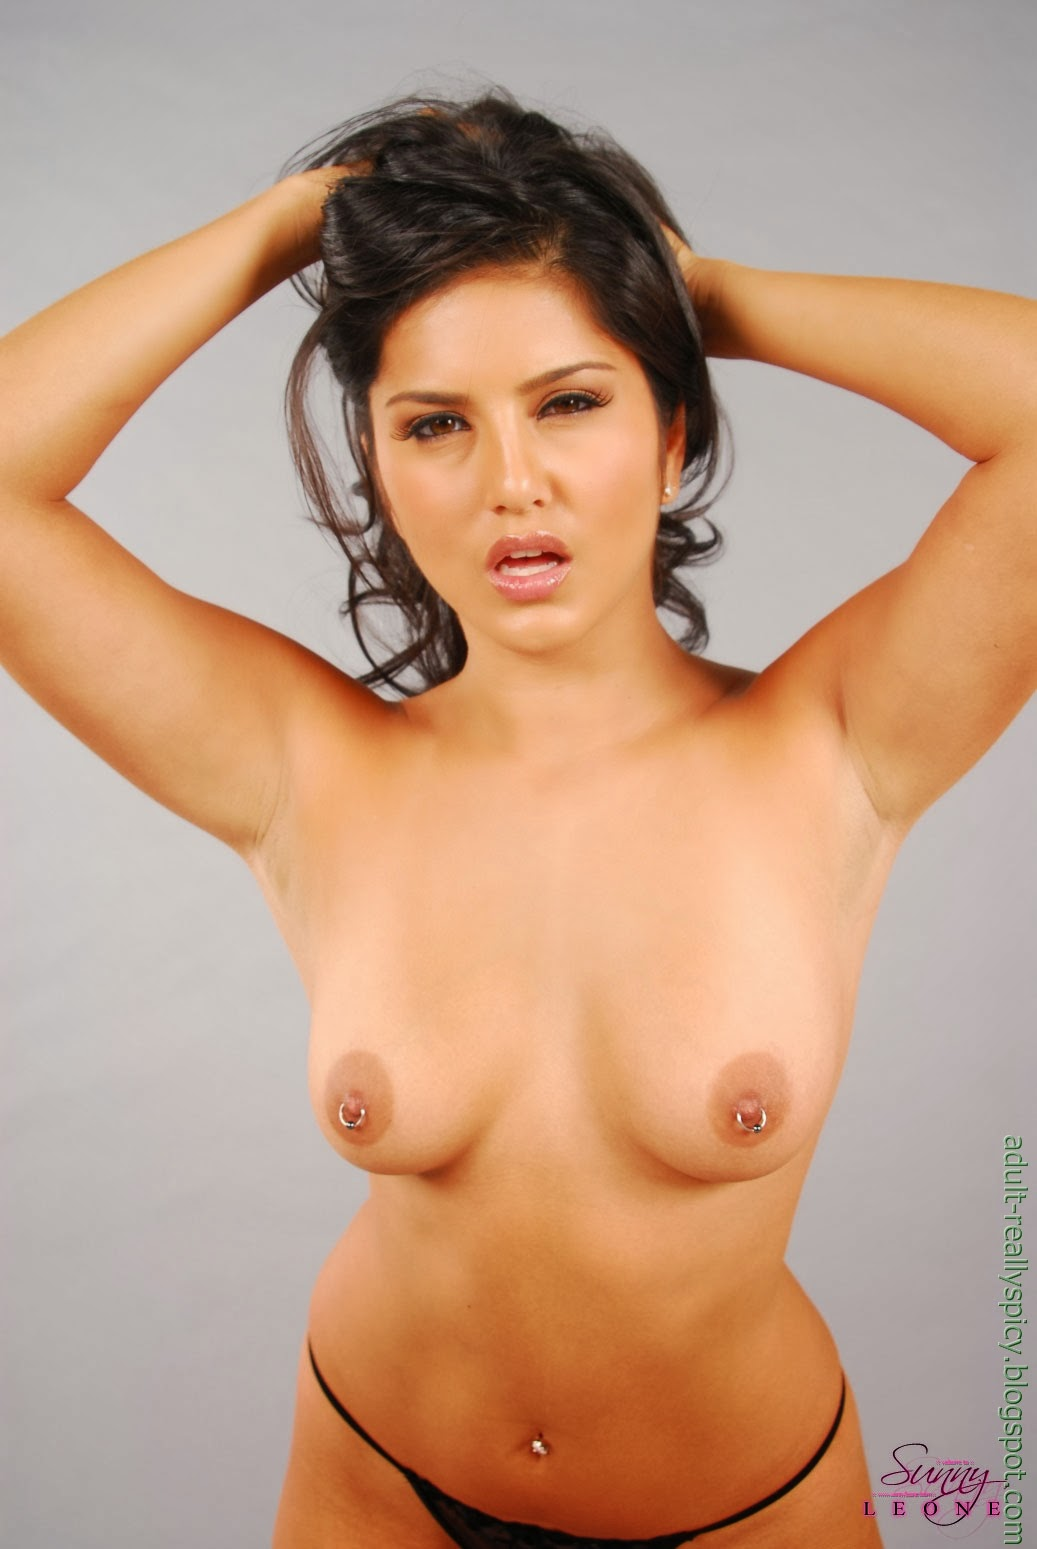 All hot old aunty nudes sexy photos